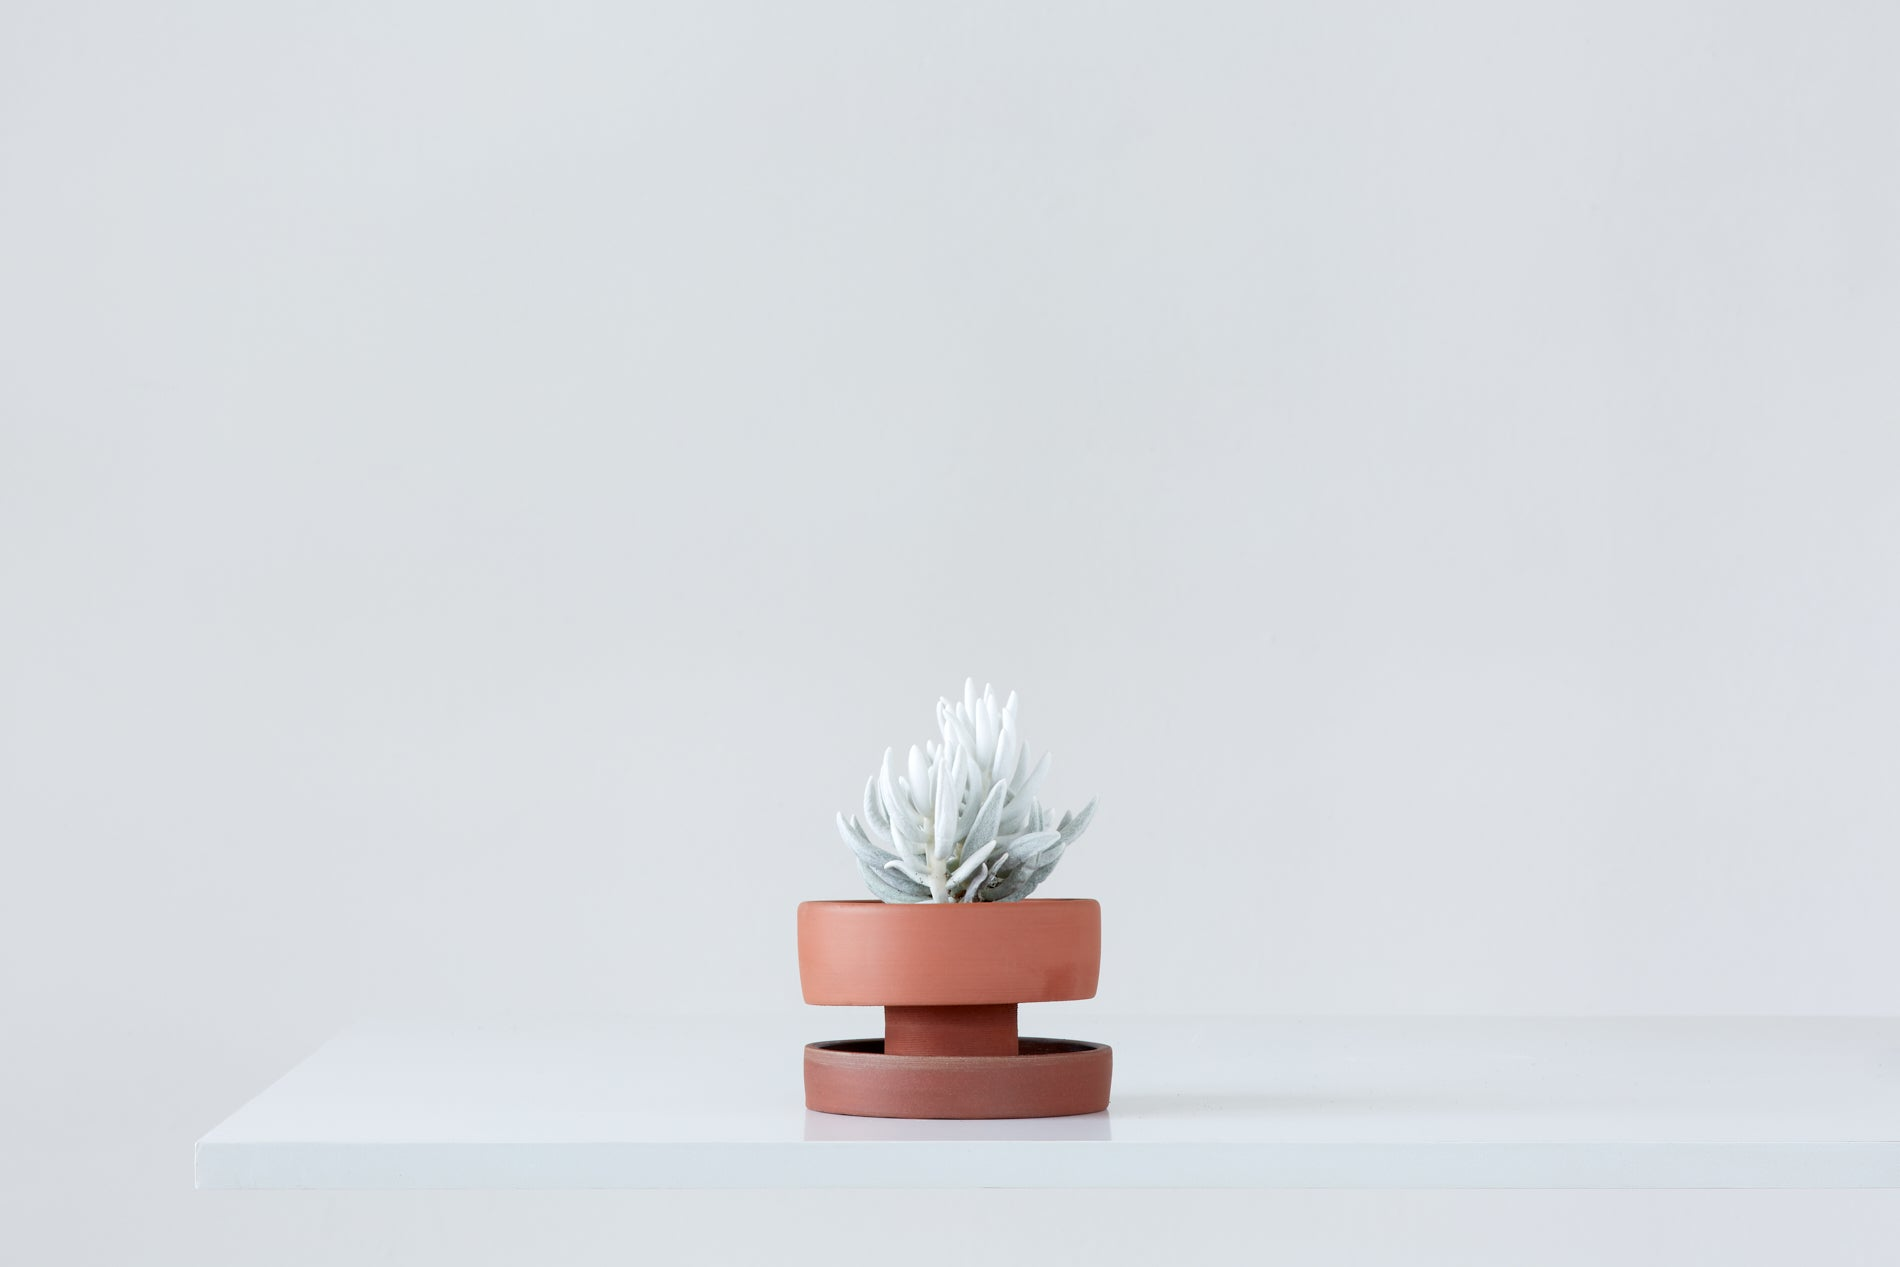 Set of flower pots - red clay